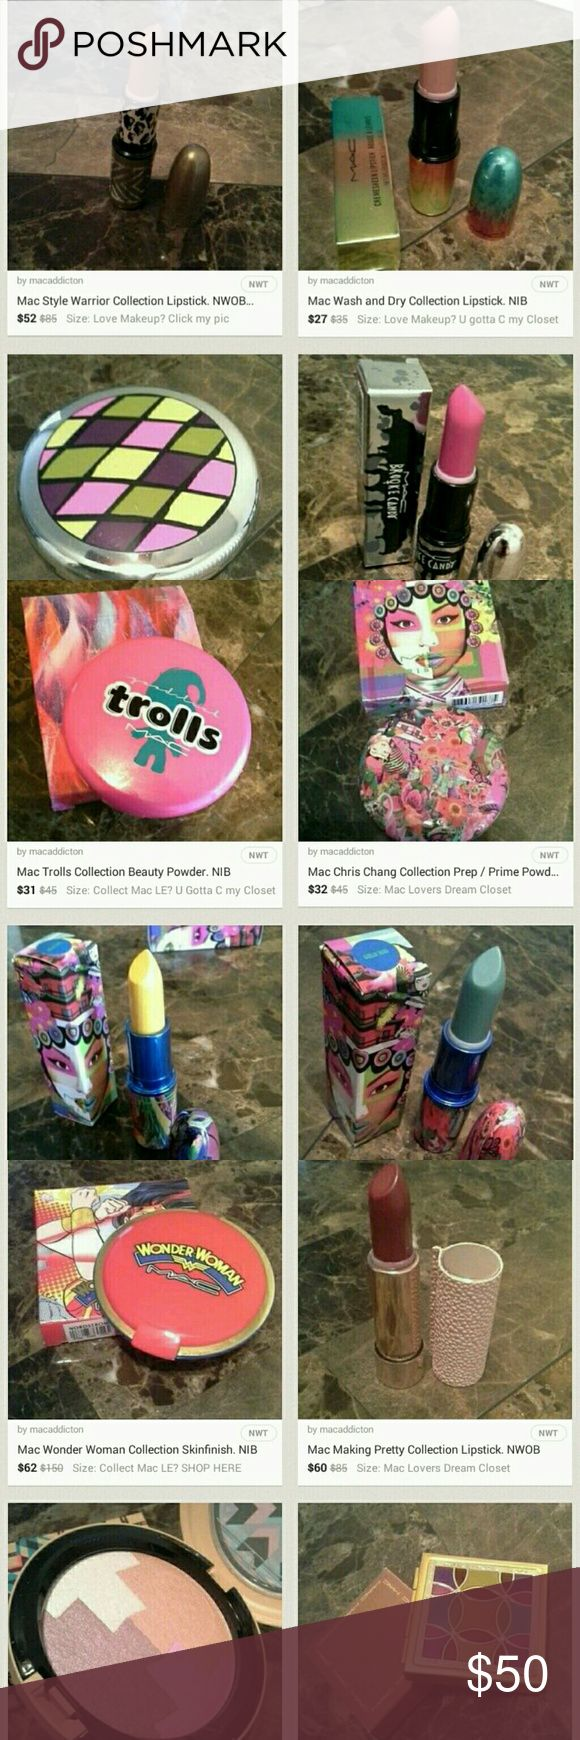 Offers Accepted Ship TODAY Love Makeup?   Want only Authentic items. Guaranteed?   Seeking a trusted seller with over 100 rave reviews   Expect quick shipping?   Then you found the right closet!   ★★Click on my profile pic to check out my closet★★  Guerlain, Givenchy, Jeffree Star, Mac LE Galore, Too Faced, Tom Ford, Marc Jacobs and more   You're bound to find something you love   Accepting all REASONABLE offers   THIS LISTING NOT 4 SALE, JUST ADVERTISING MY CLOSET MAC Cosmetics Makeup…